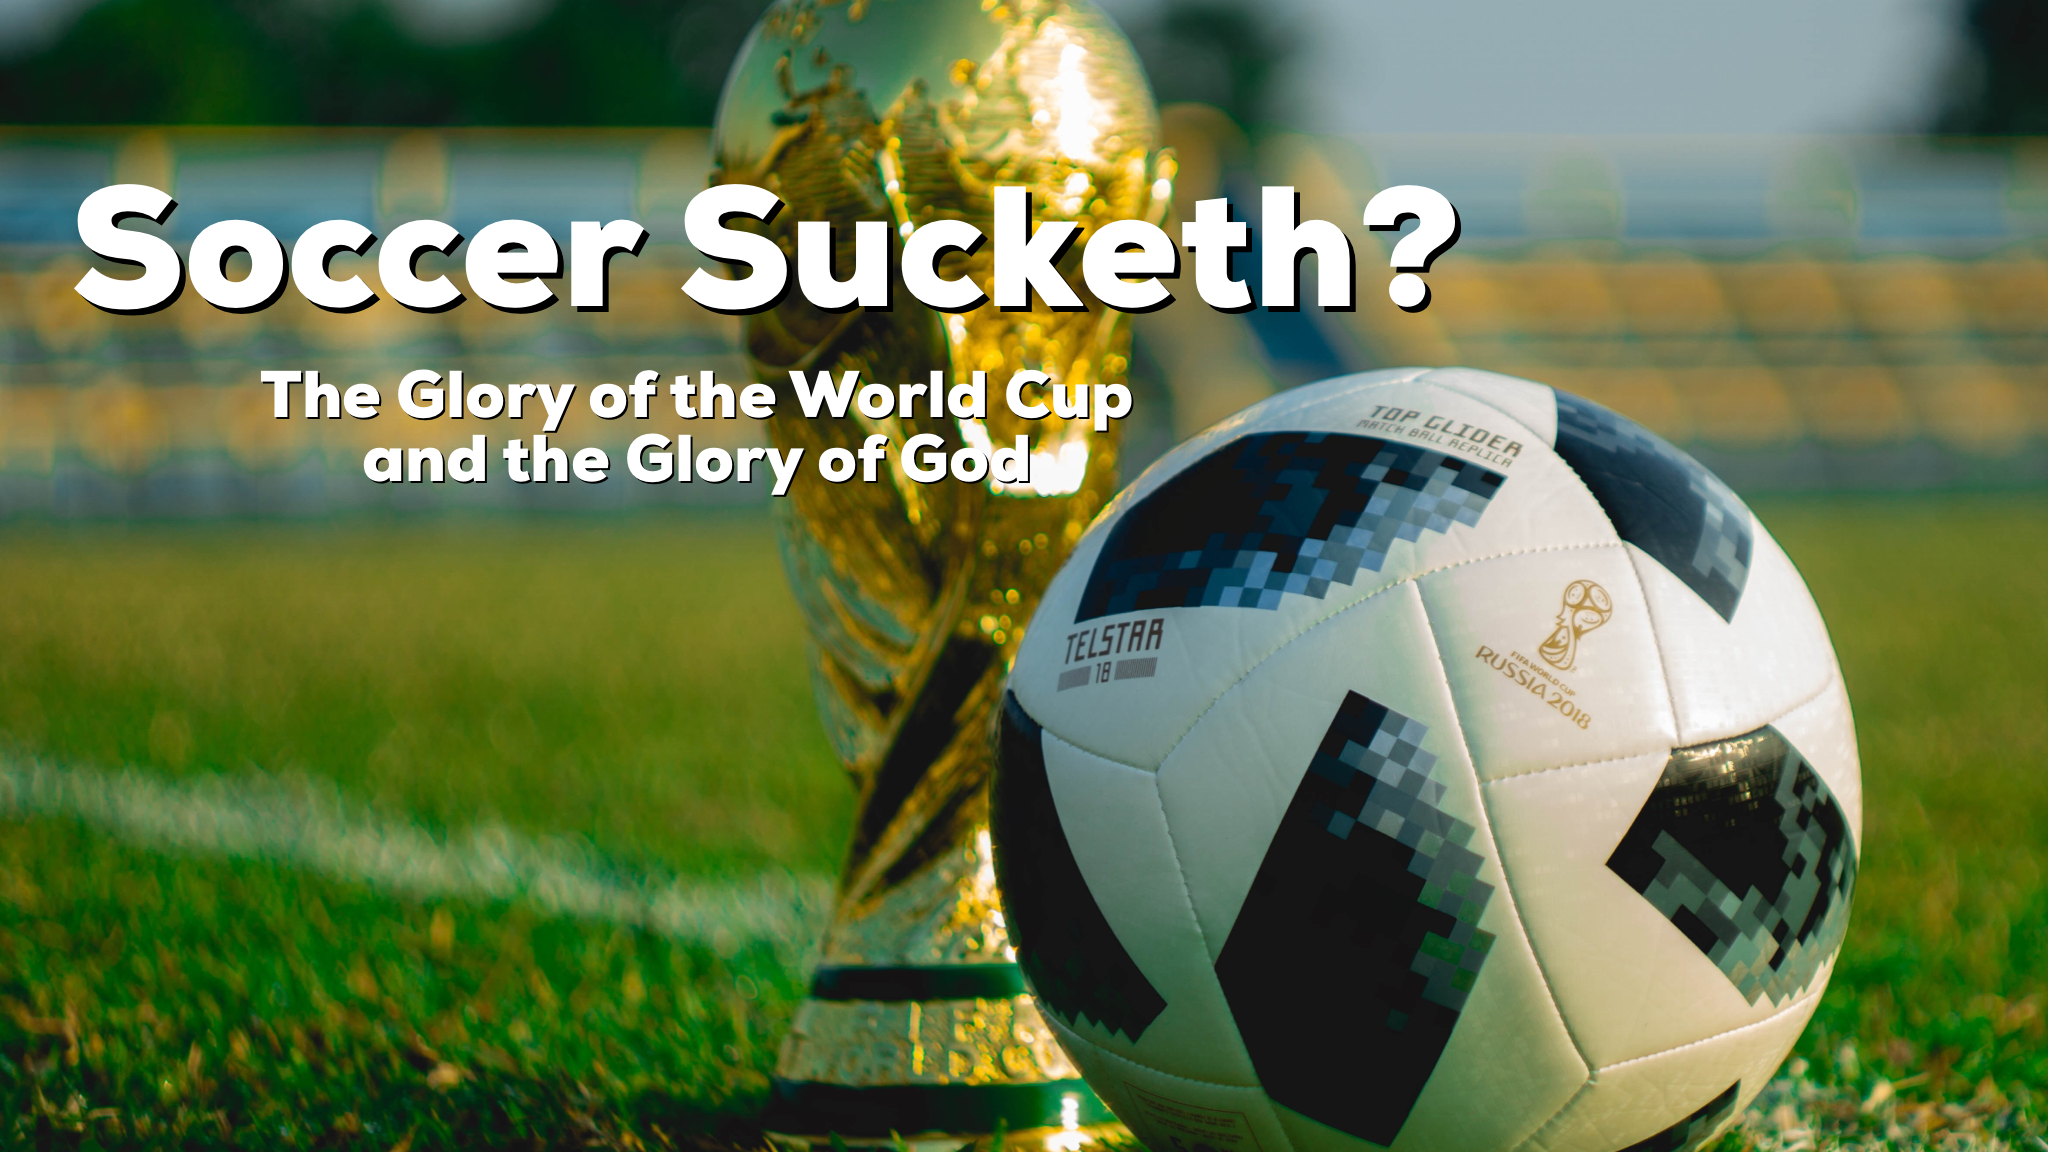 Reid and Jesse discuss the beautiful game of global football, its growth in America and how the glory of our games can be idolatrous or beautiful in the hearts of people.